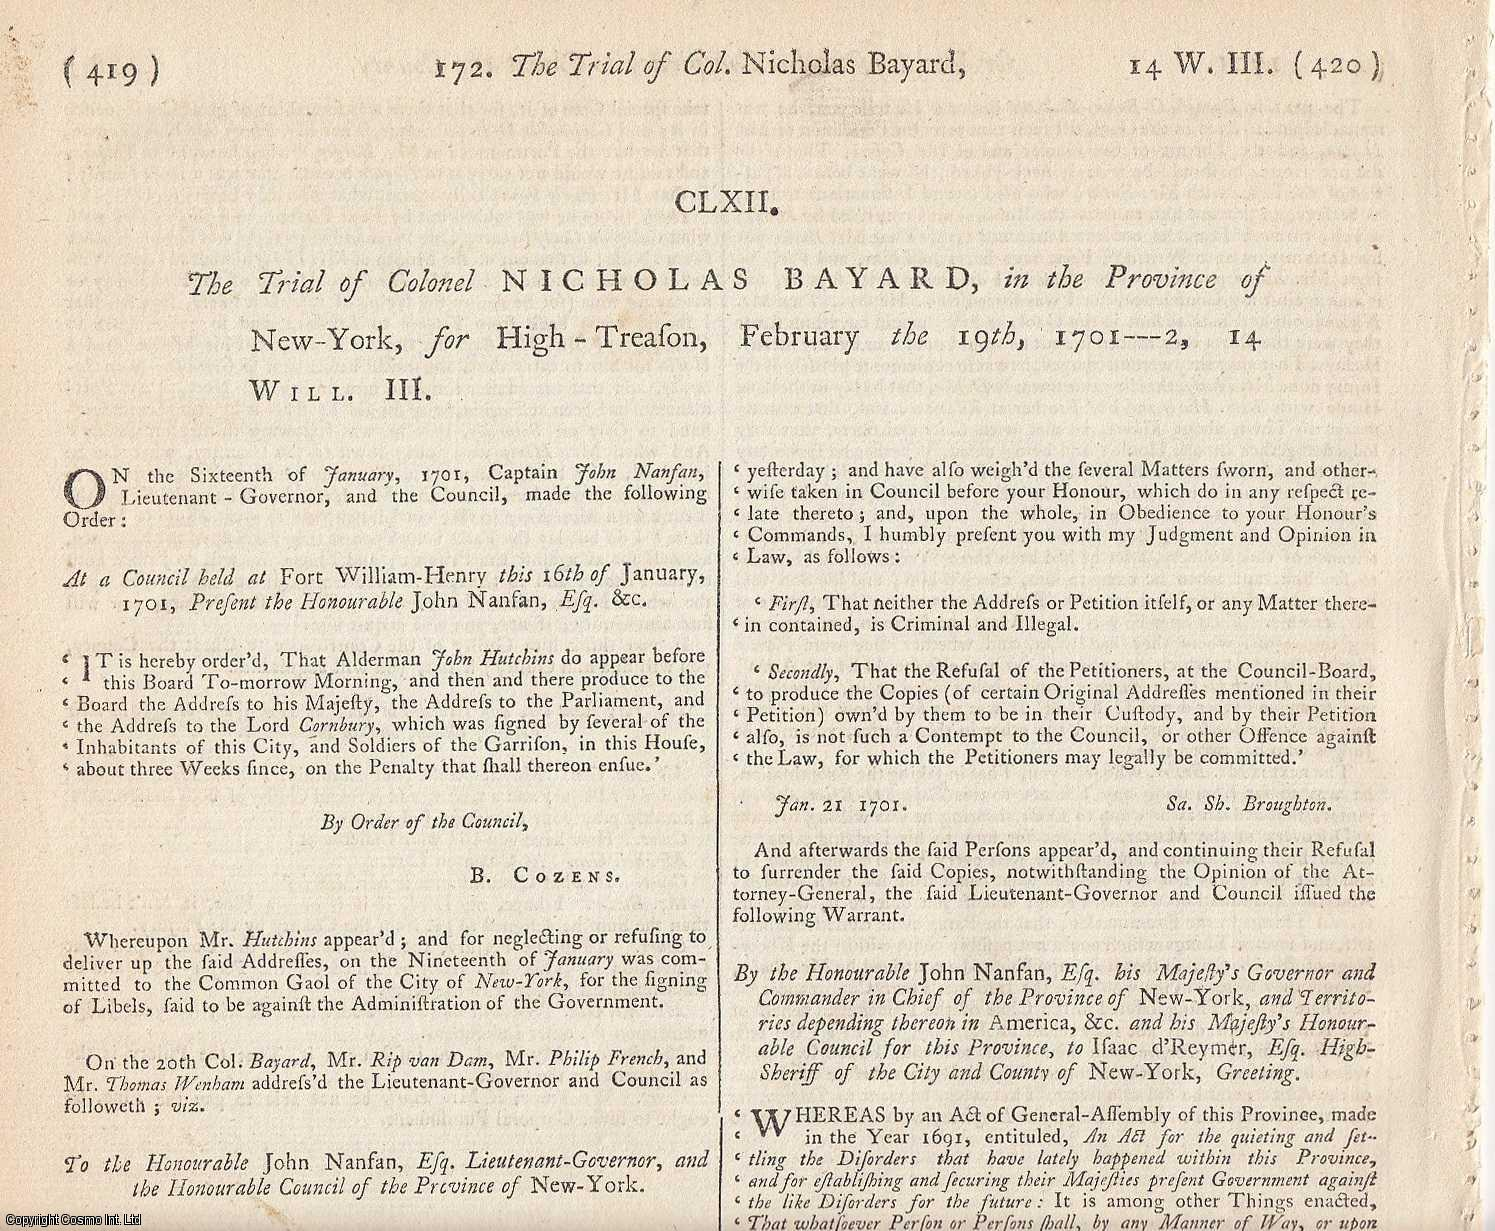 AMERICAN TRIAL.  The Trial of Colonel Nicholas Bayard in the Province of New York, for High Treason, February the 19th, 1701., [Trial].